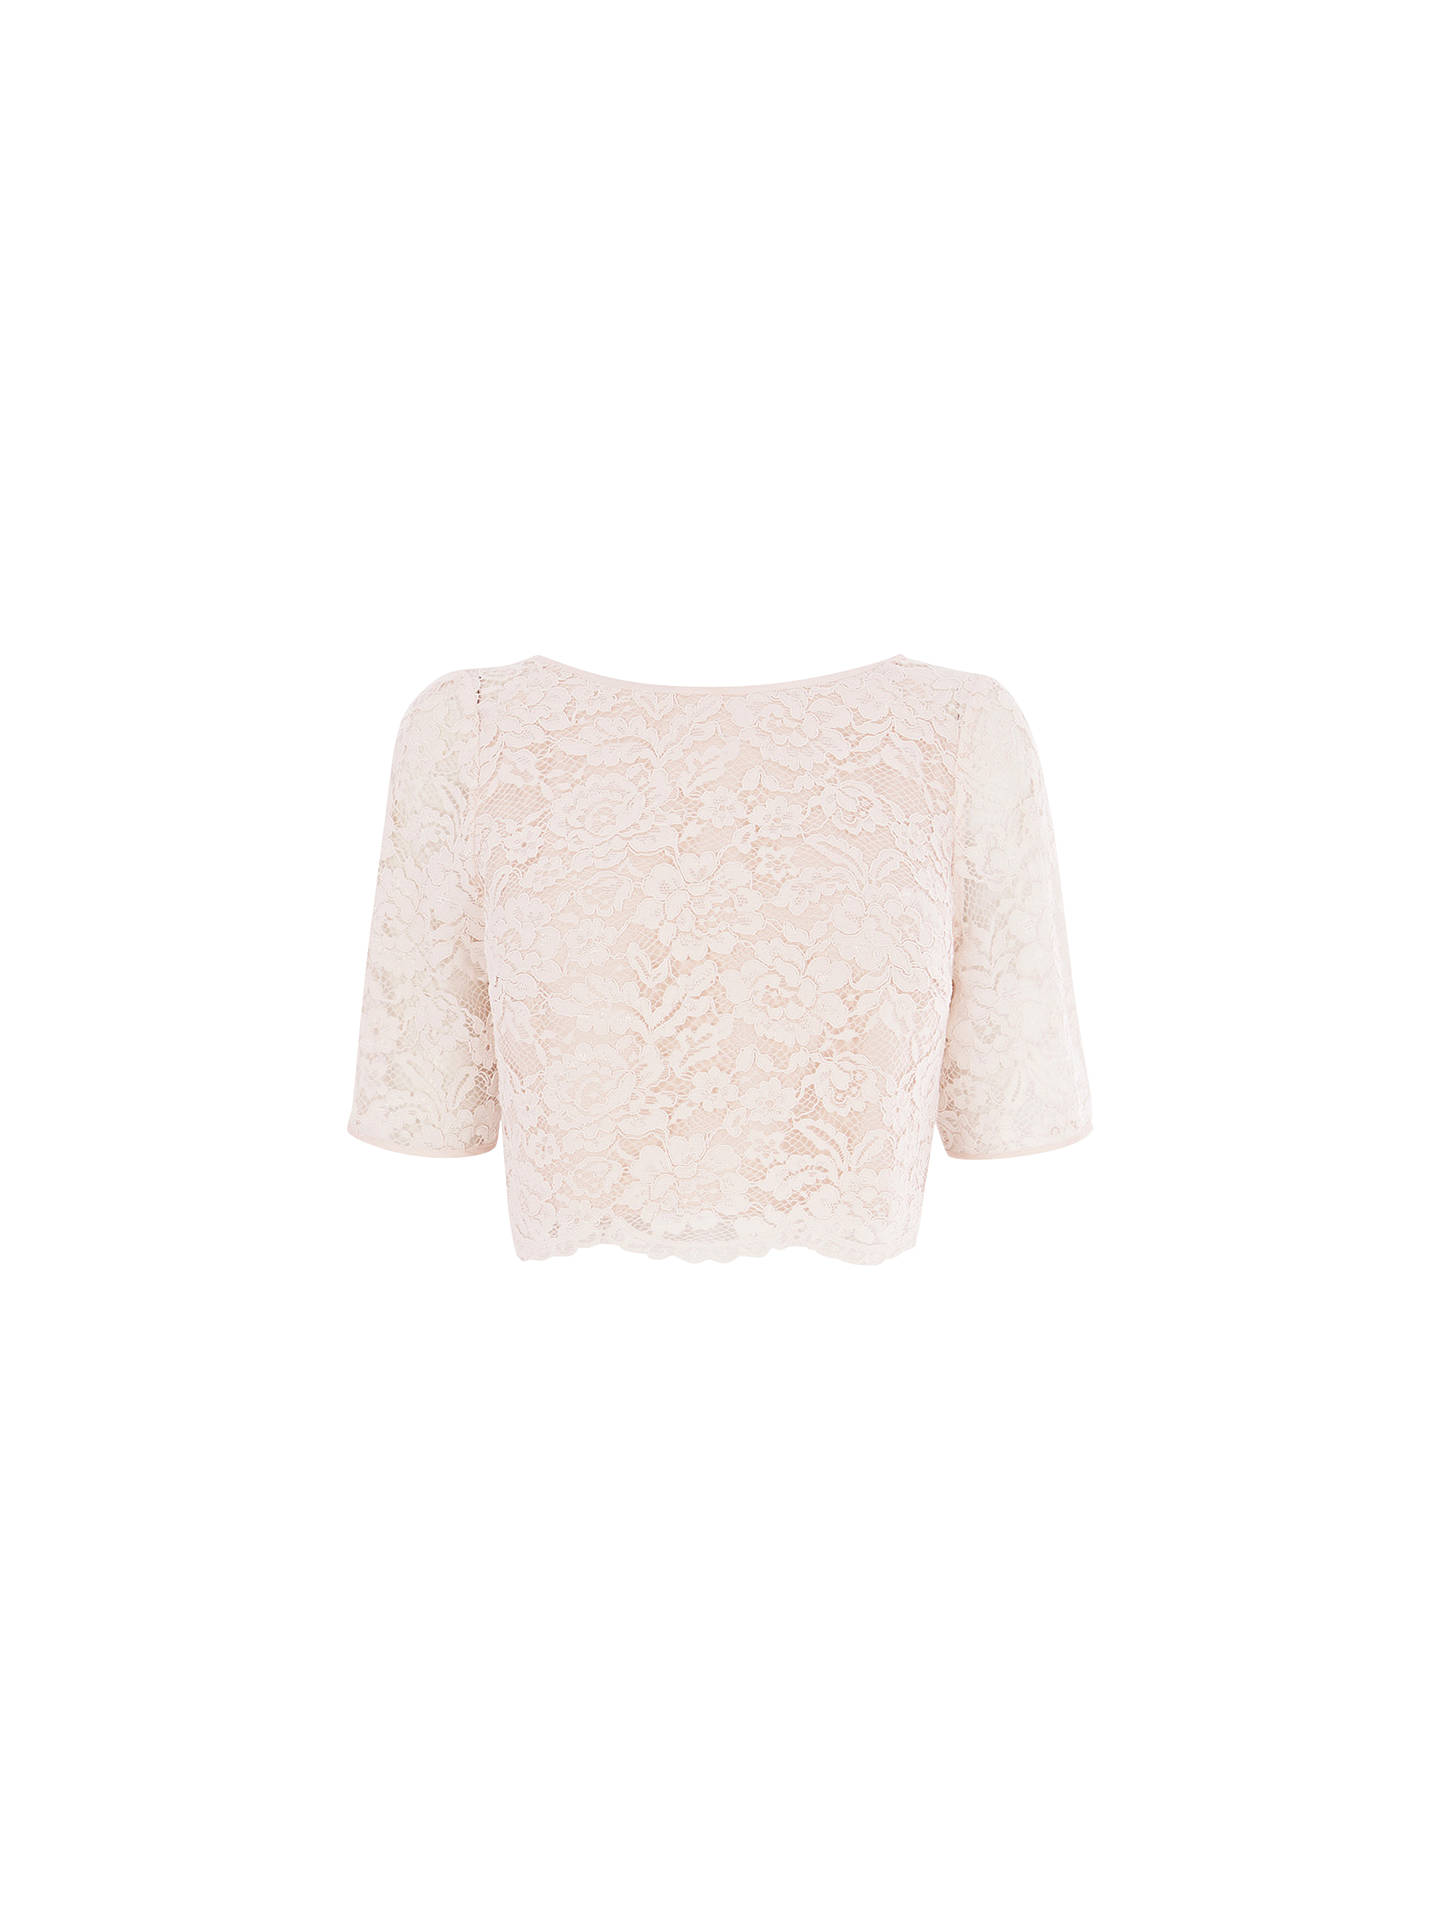 96bf7439645fde Buy Coast Manon Lace Top, Blush, 6 Online at johnlewis.com ...